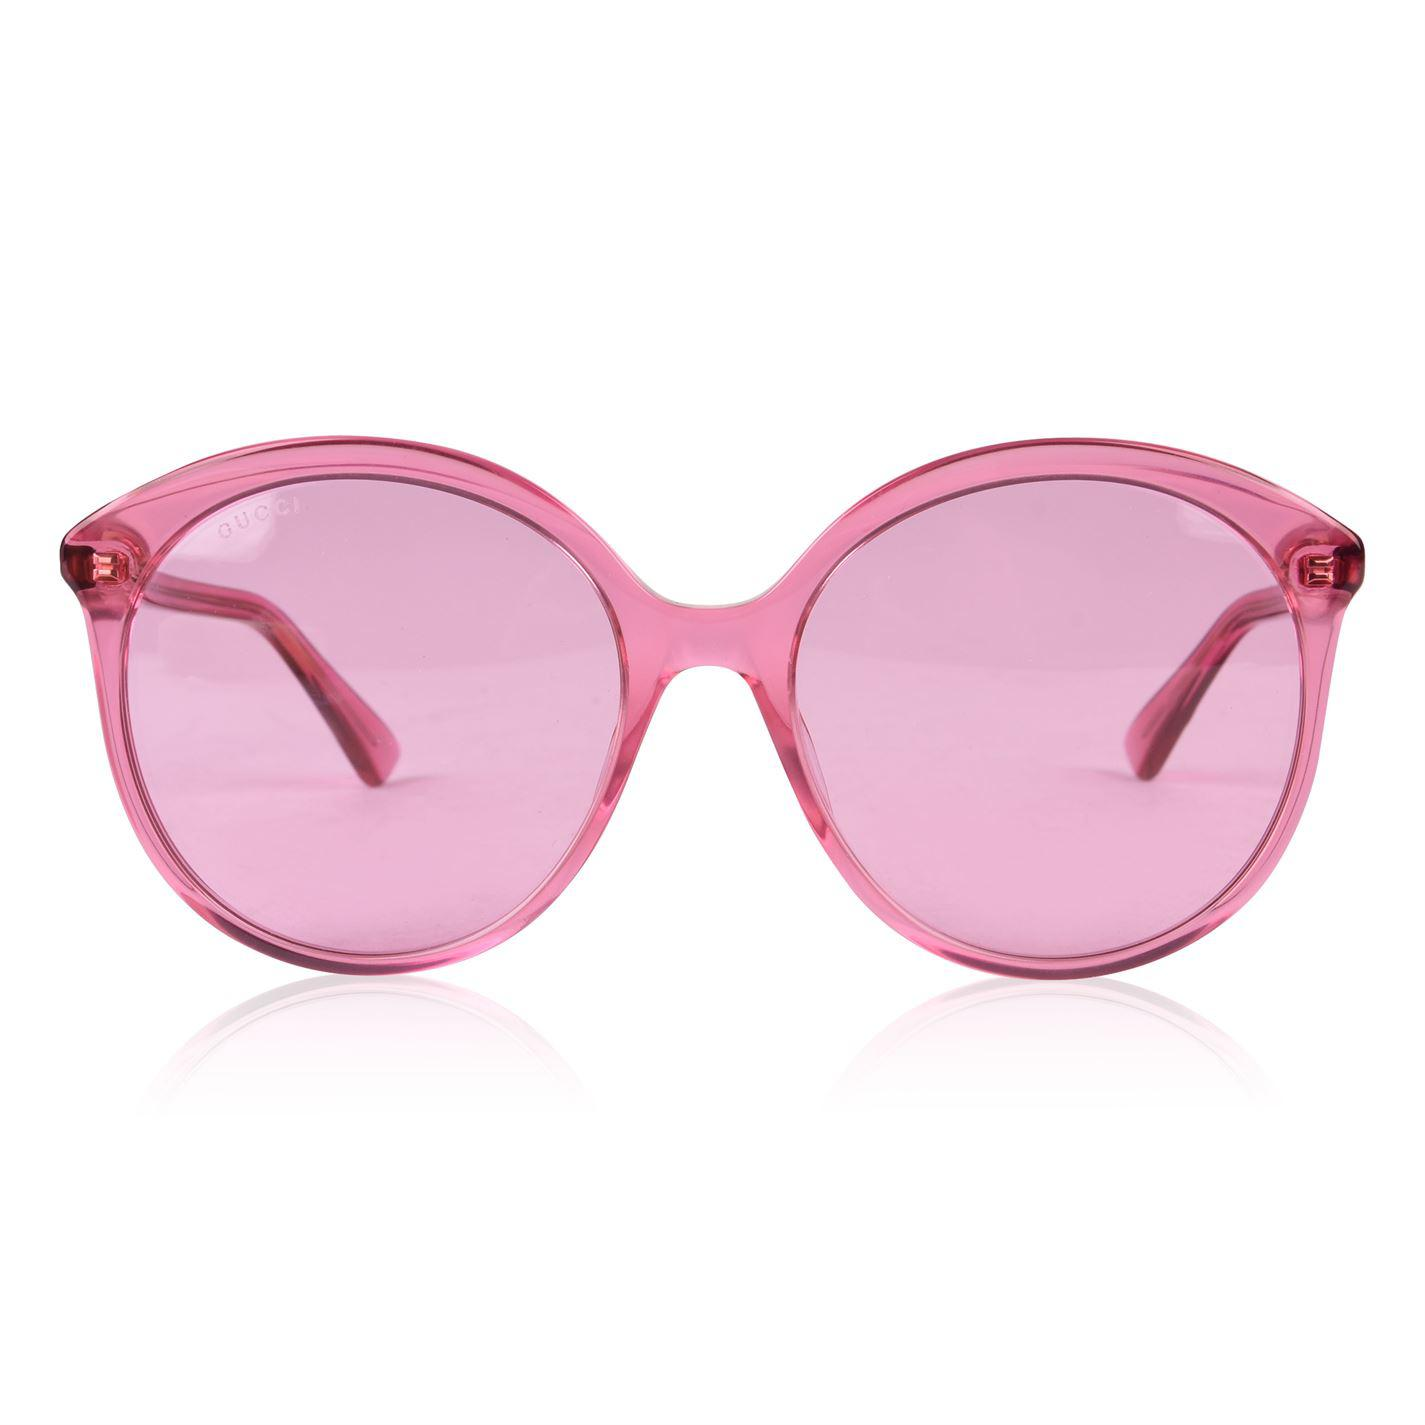 cebcfaa15650 Gucci. Women s Pink Gg0257s Specialized Fit Round Frame Acetate Sunglasses